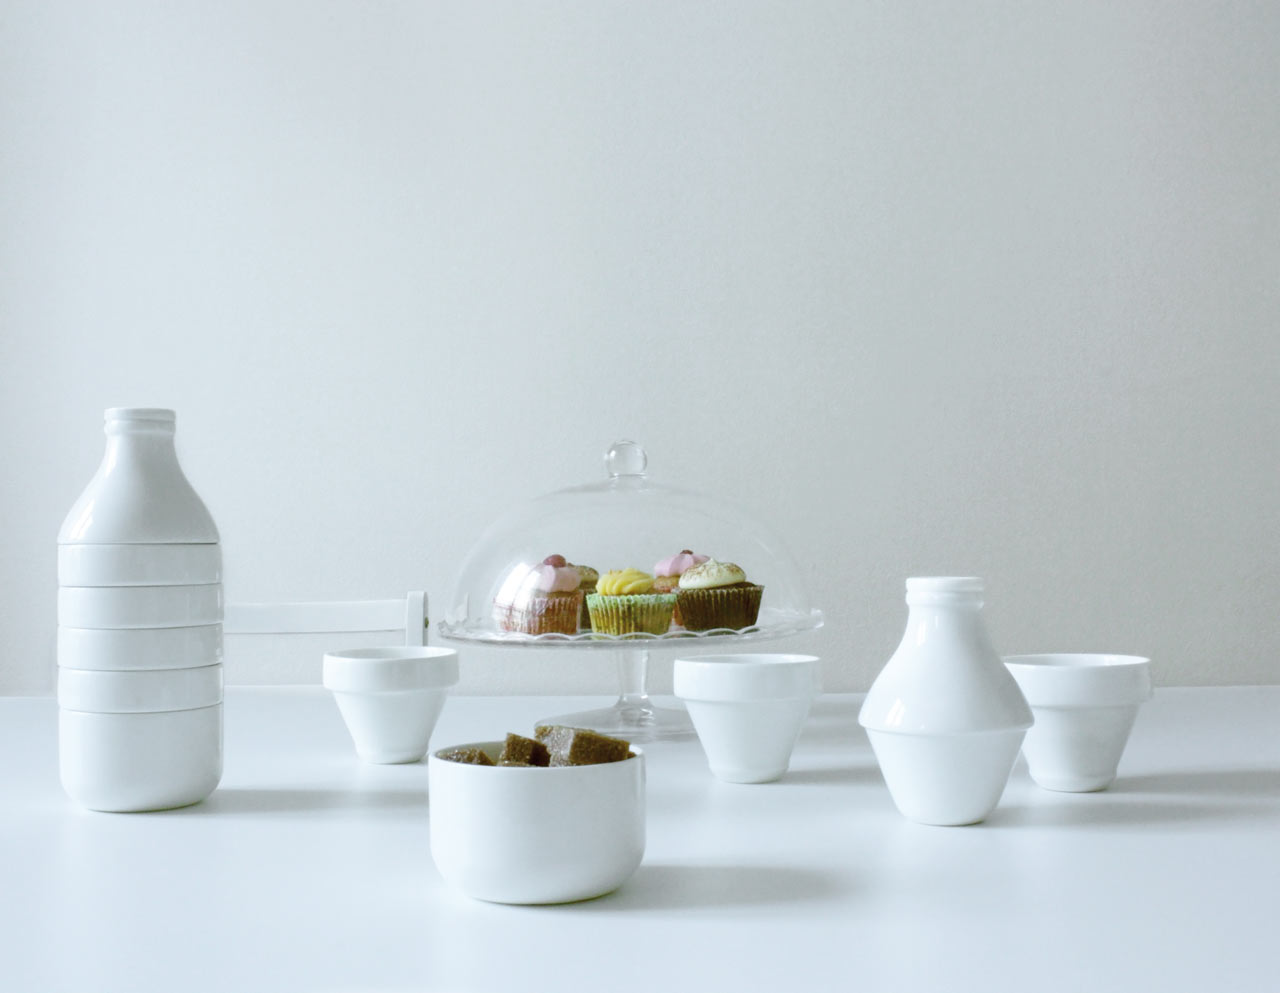 WITHMILK by DOIY: A Drinking Set Within A Bottle